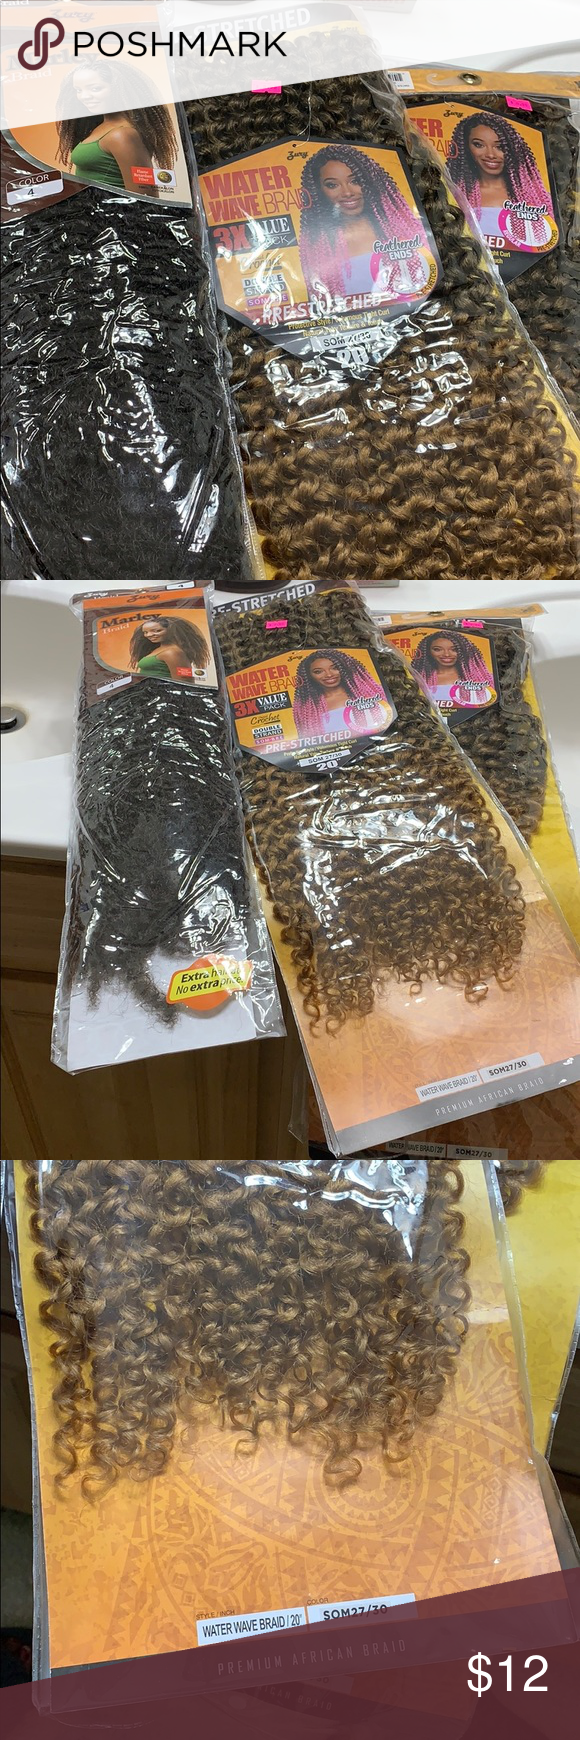 Brand new braid or crochet hair Never taken out the bag three packs of hair for  Brand new braid or crochet hair Never taken out the bag three packs of hair for